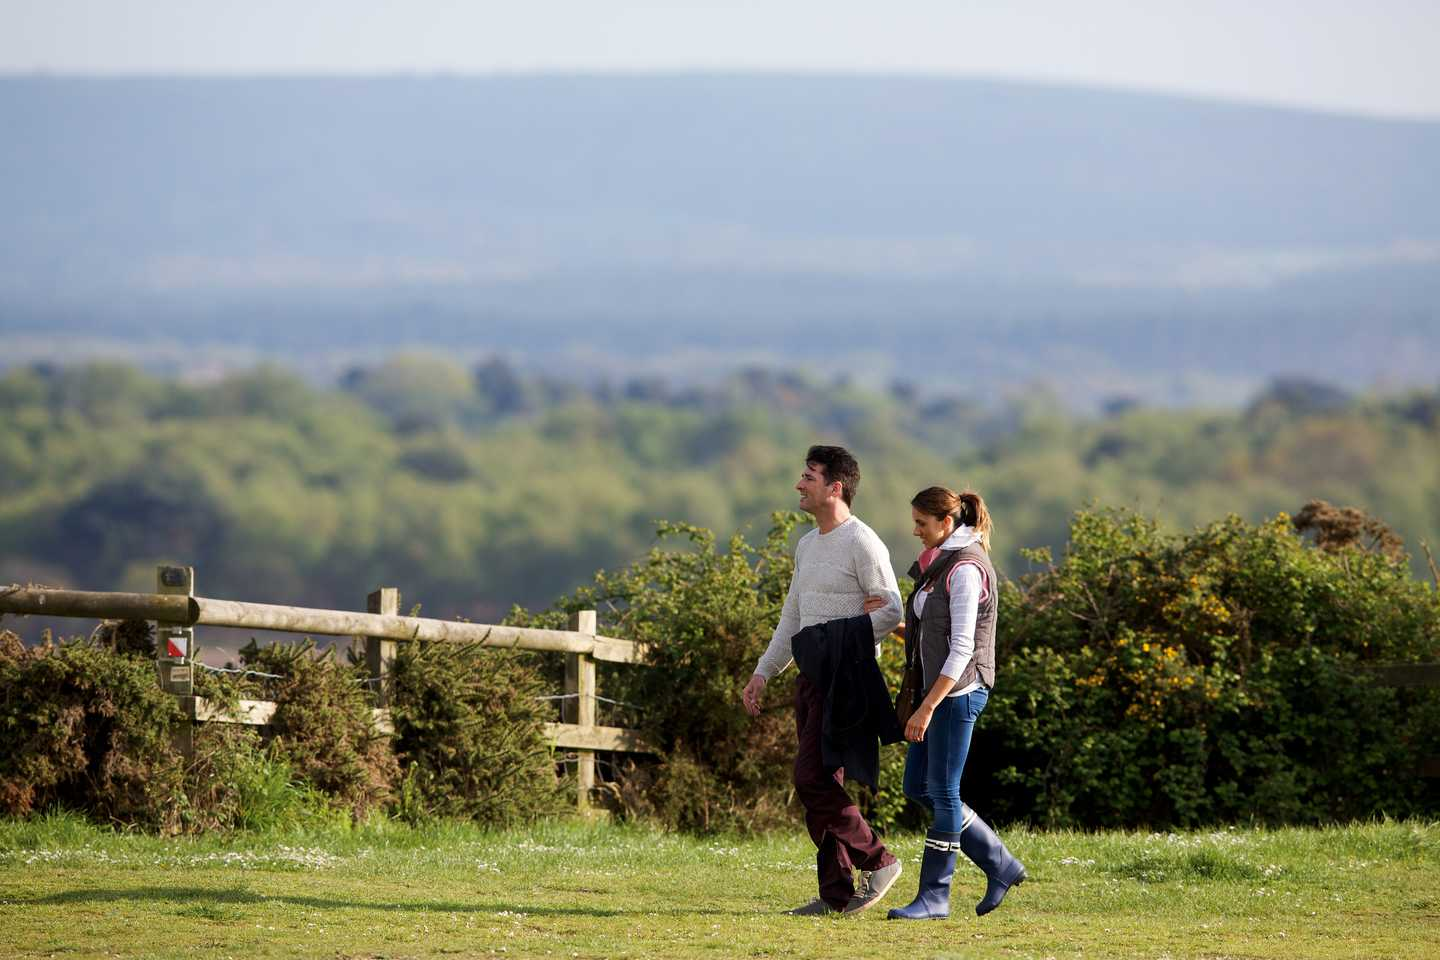 Couple walking together in a field